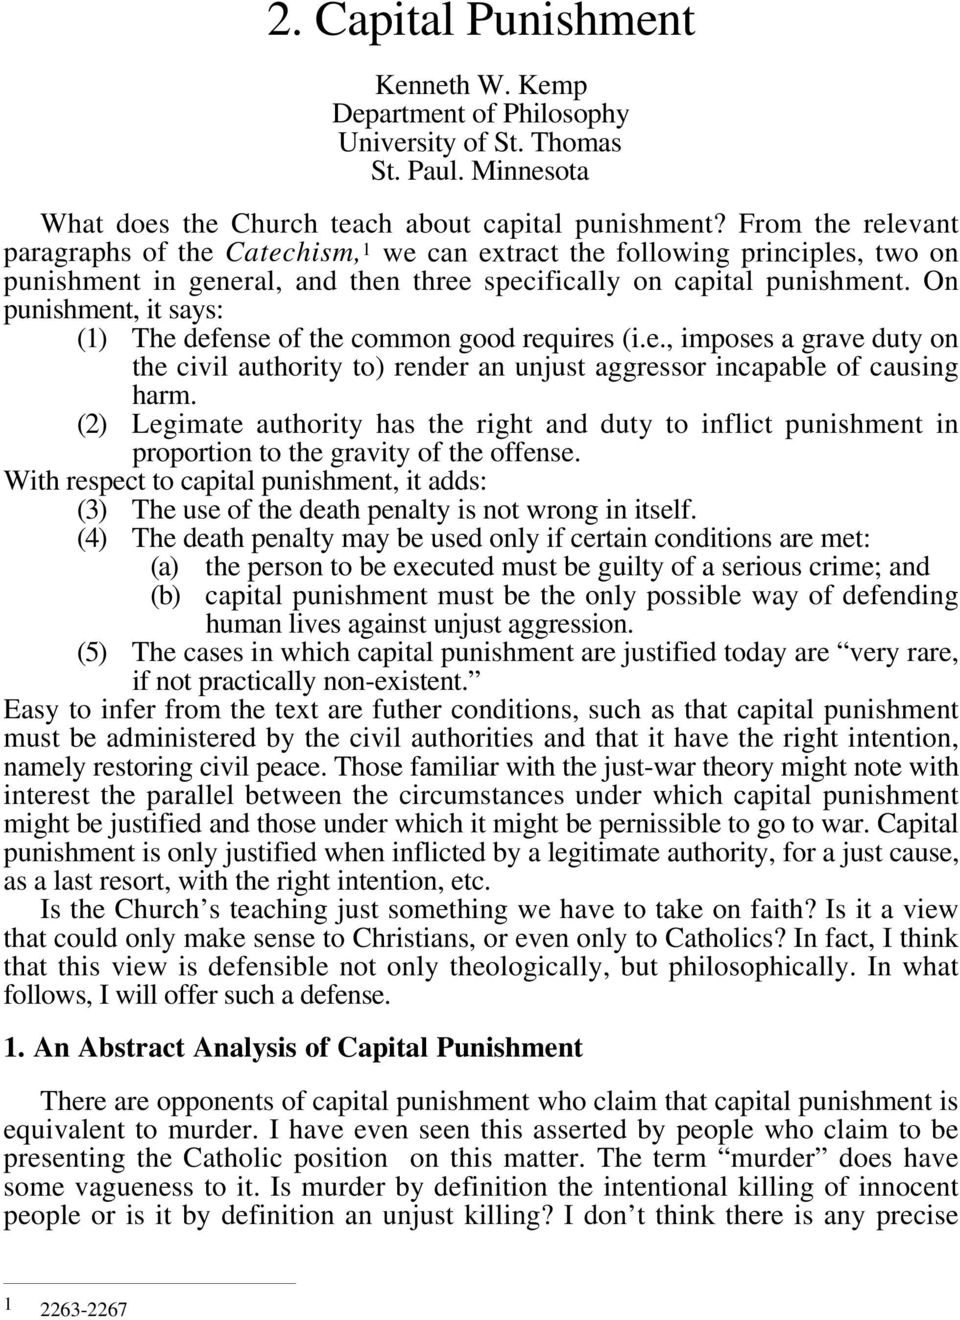 2. capital punishment - pdf